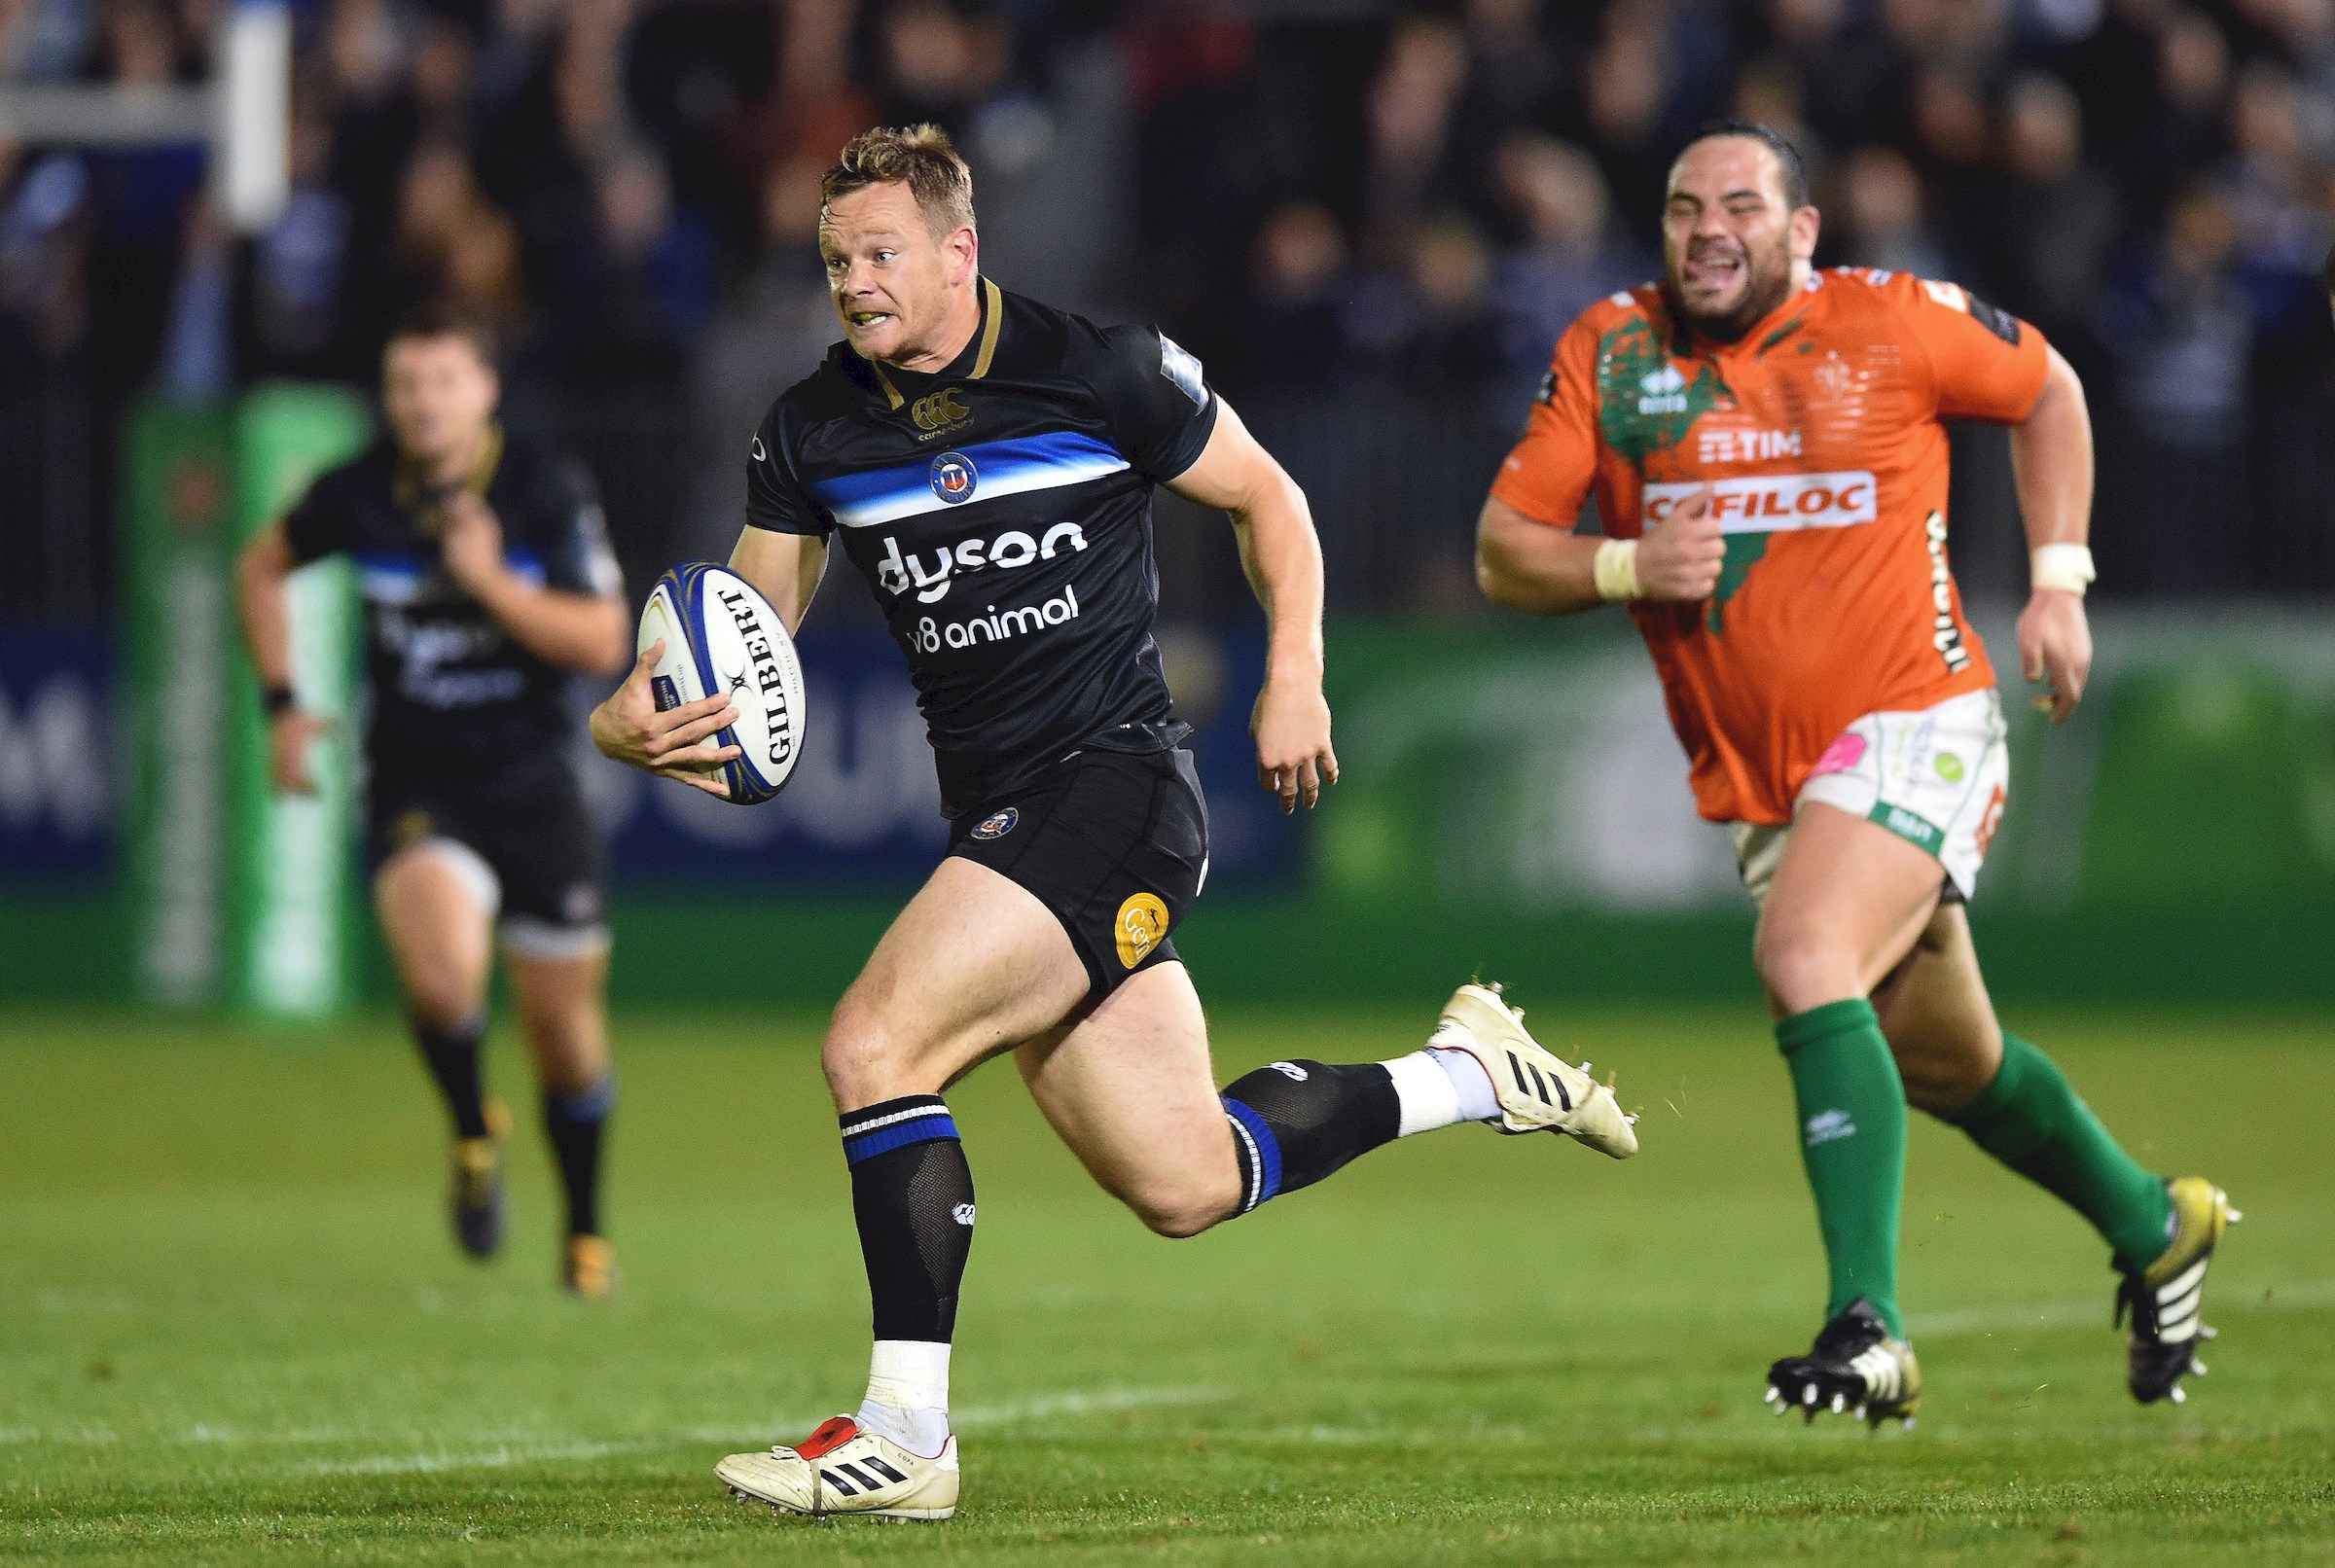 Bath Rugby's Cook to make 100th appearance against Toulon